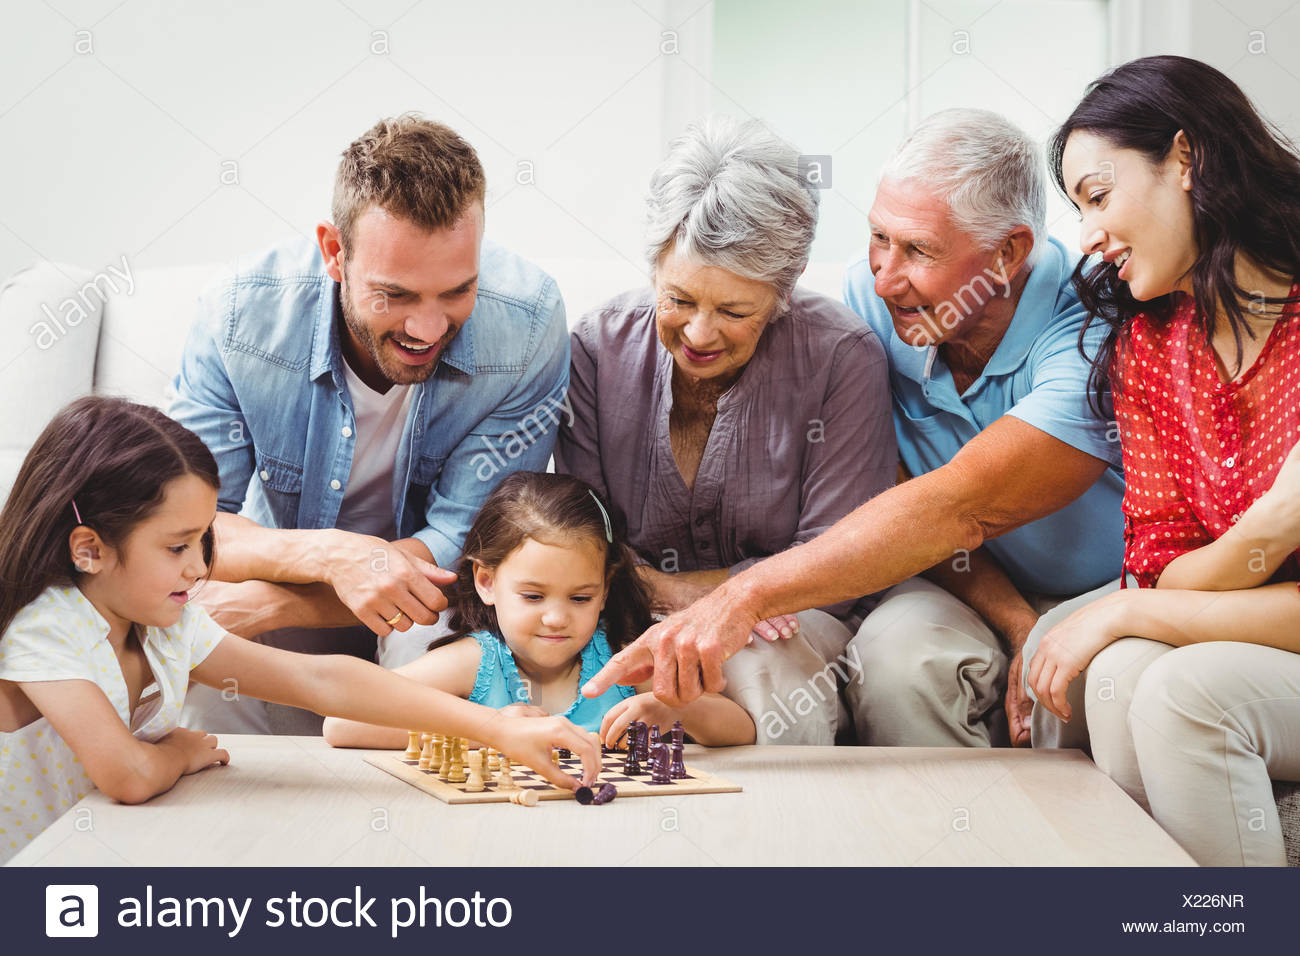 Smiling family playing chess - Stock Image